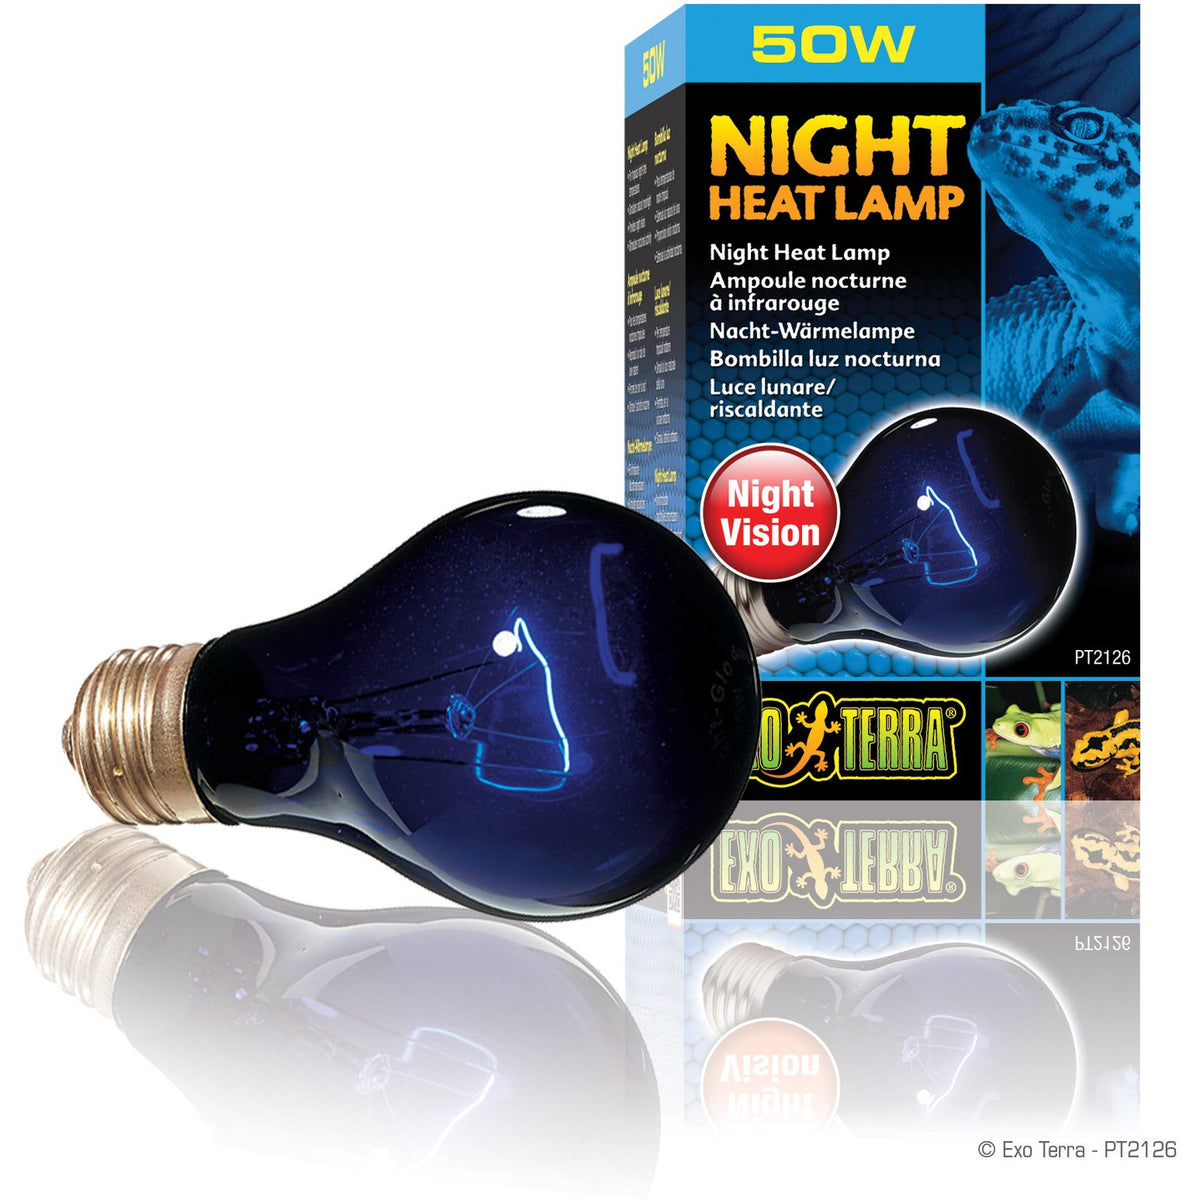 Exo Terra Night Heat Lamp - A19 / 50 W